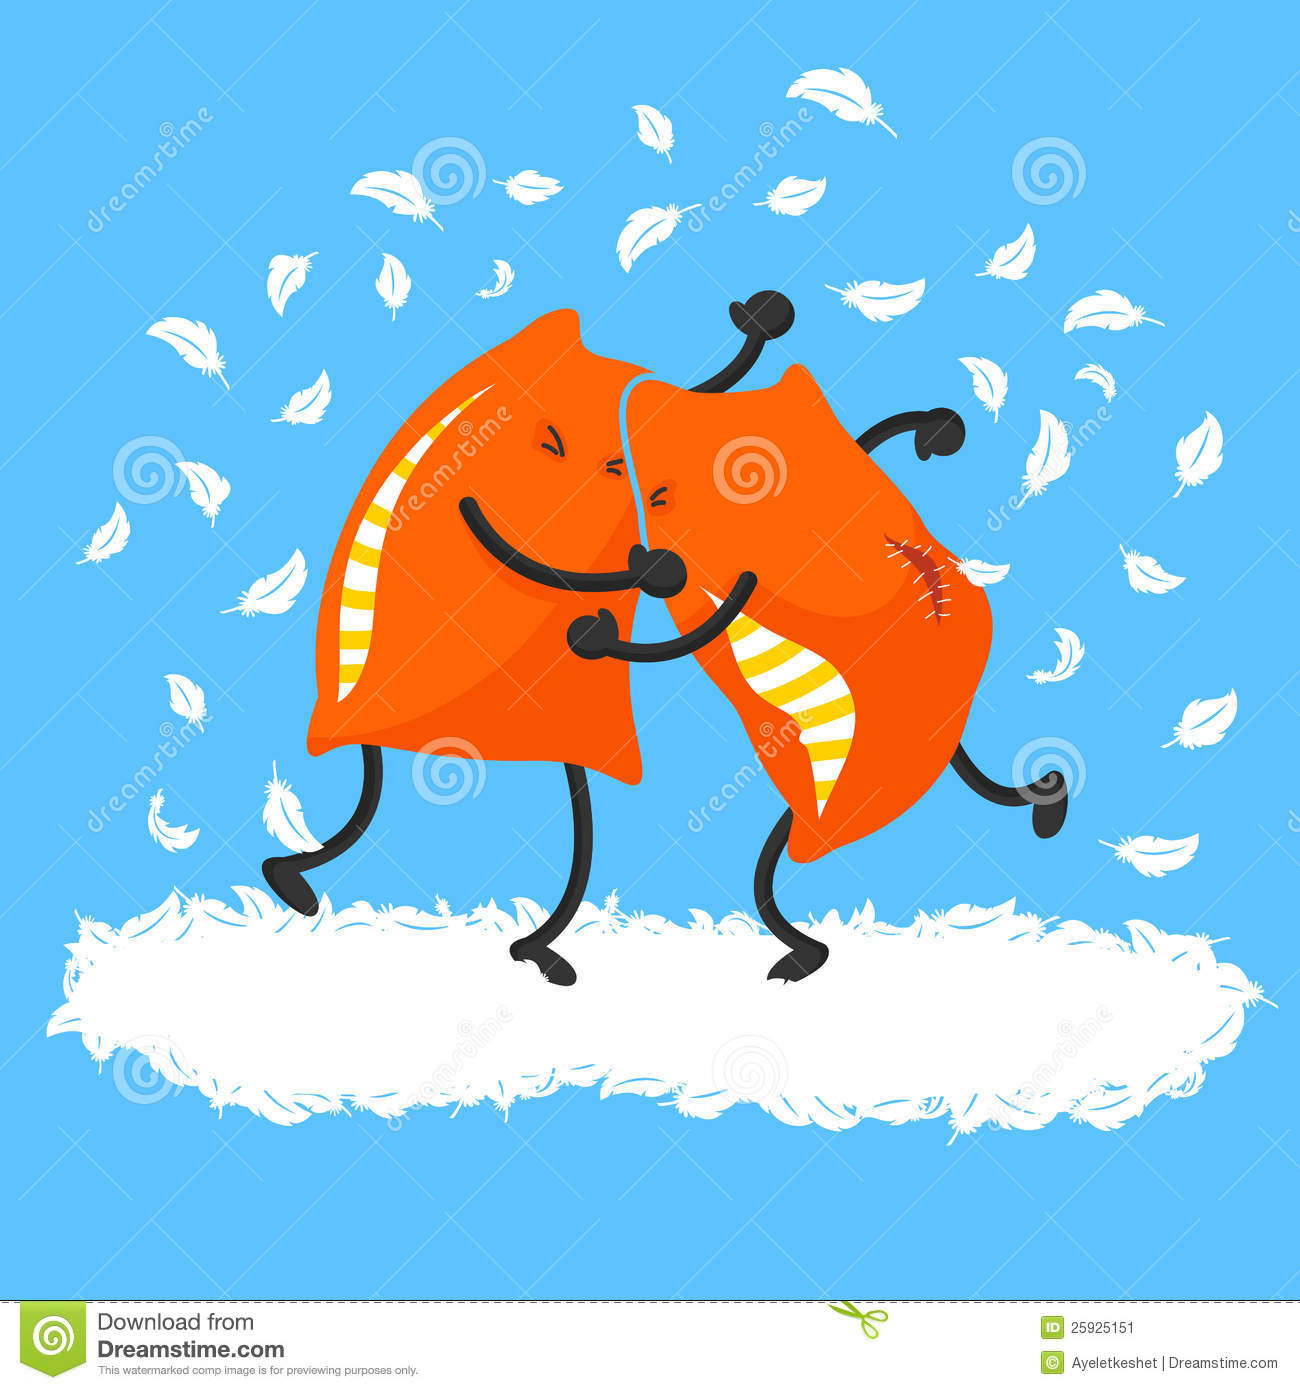 Gas Credit Card >> Pillow Fight Stock Image - Image: 25925151